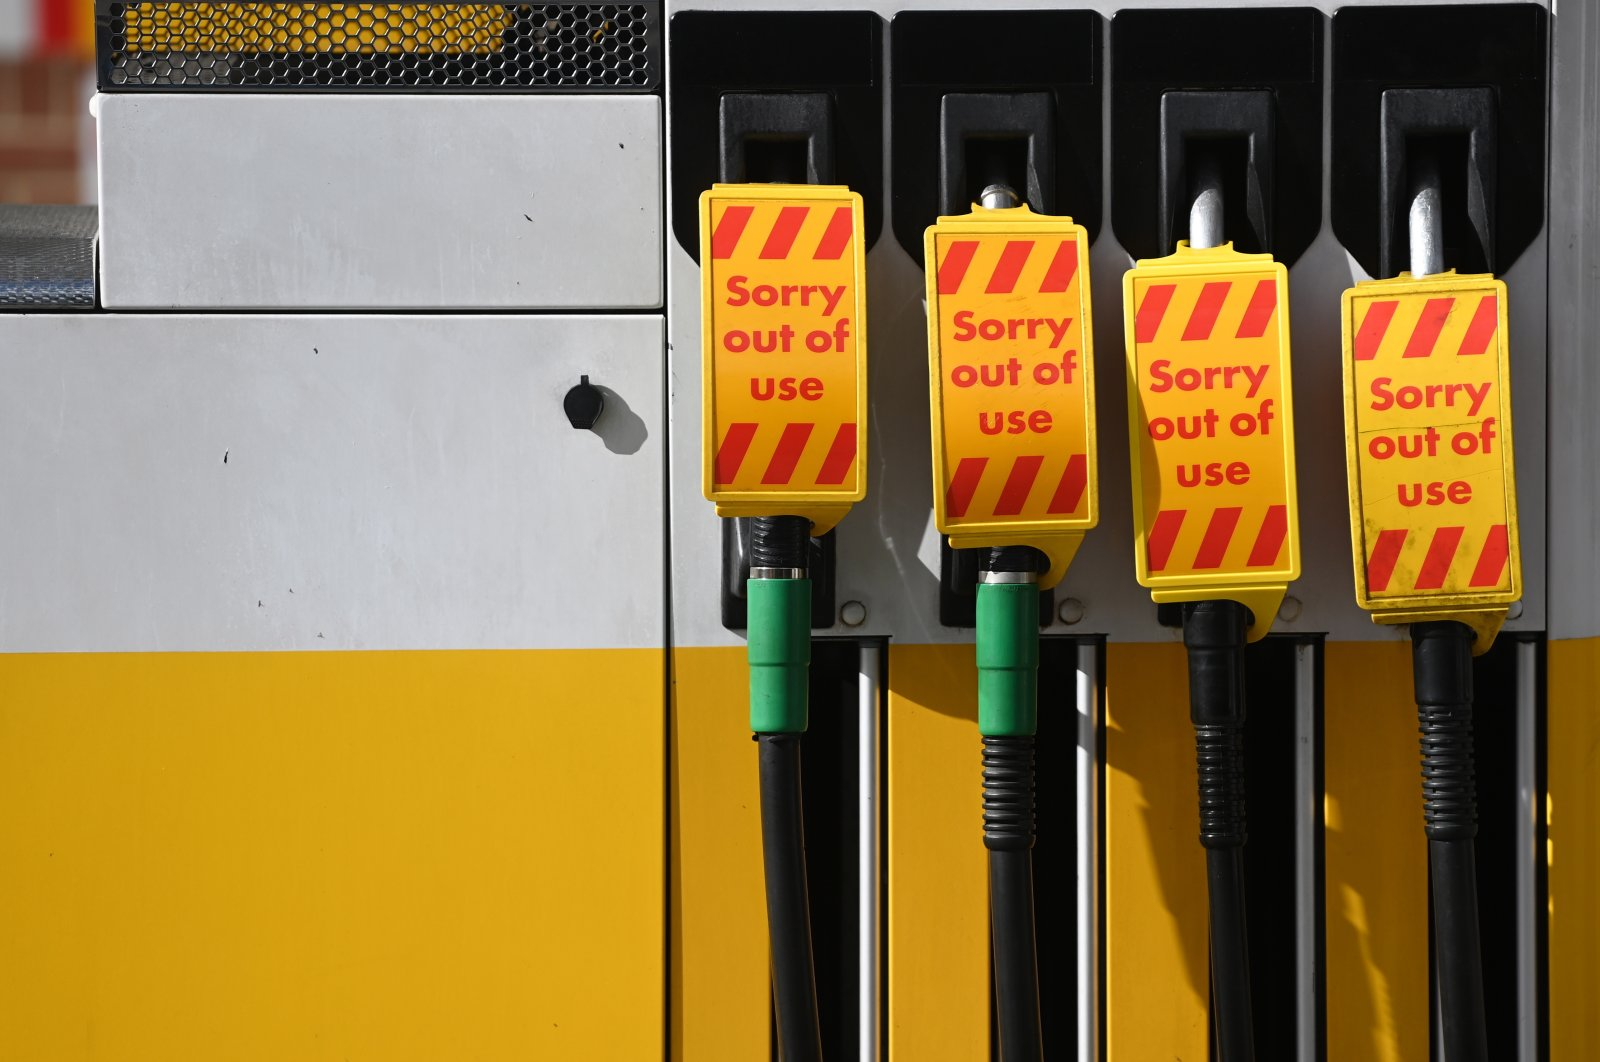 Out of use signs are displayed on fuel pumps in a Shell garage in Muswell Hill in London, Britain, Sept. 27, 2021. (EPA Photo)